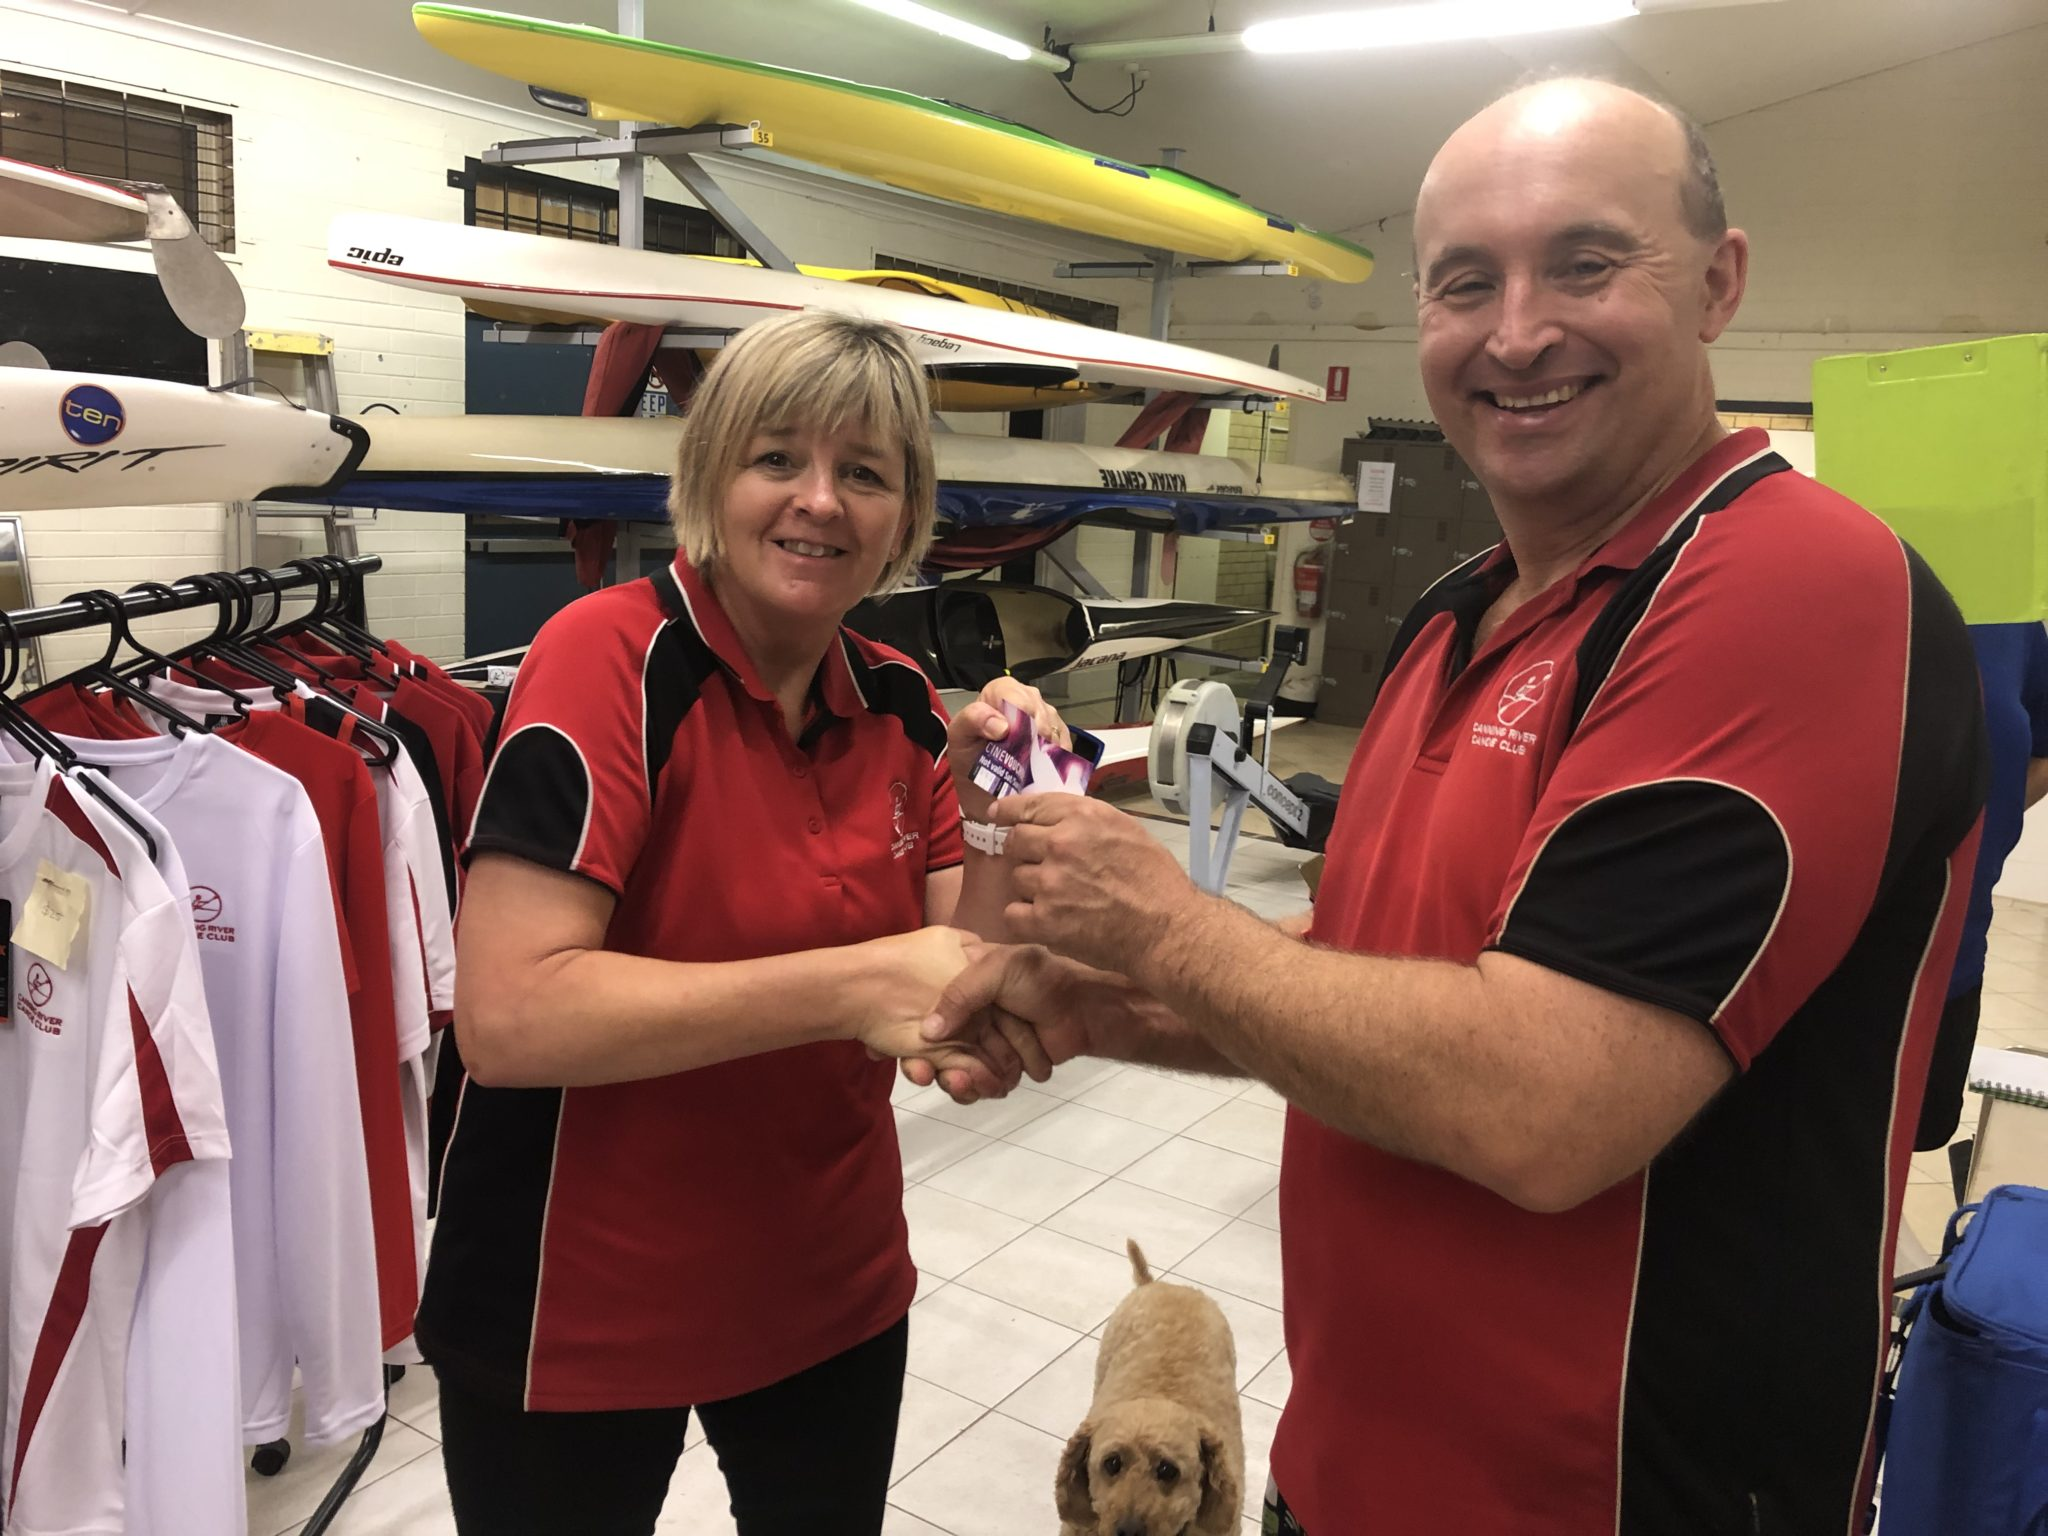 Tuesday 26th February 2019 : Tonight's photo shows club secretary Judith Thompson presenting Mike Galanty with the winners movie voucher.